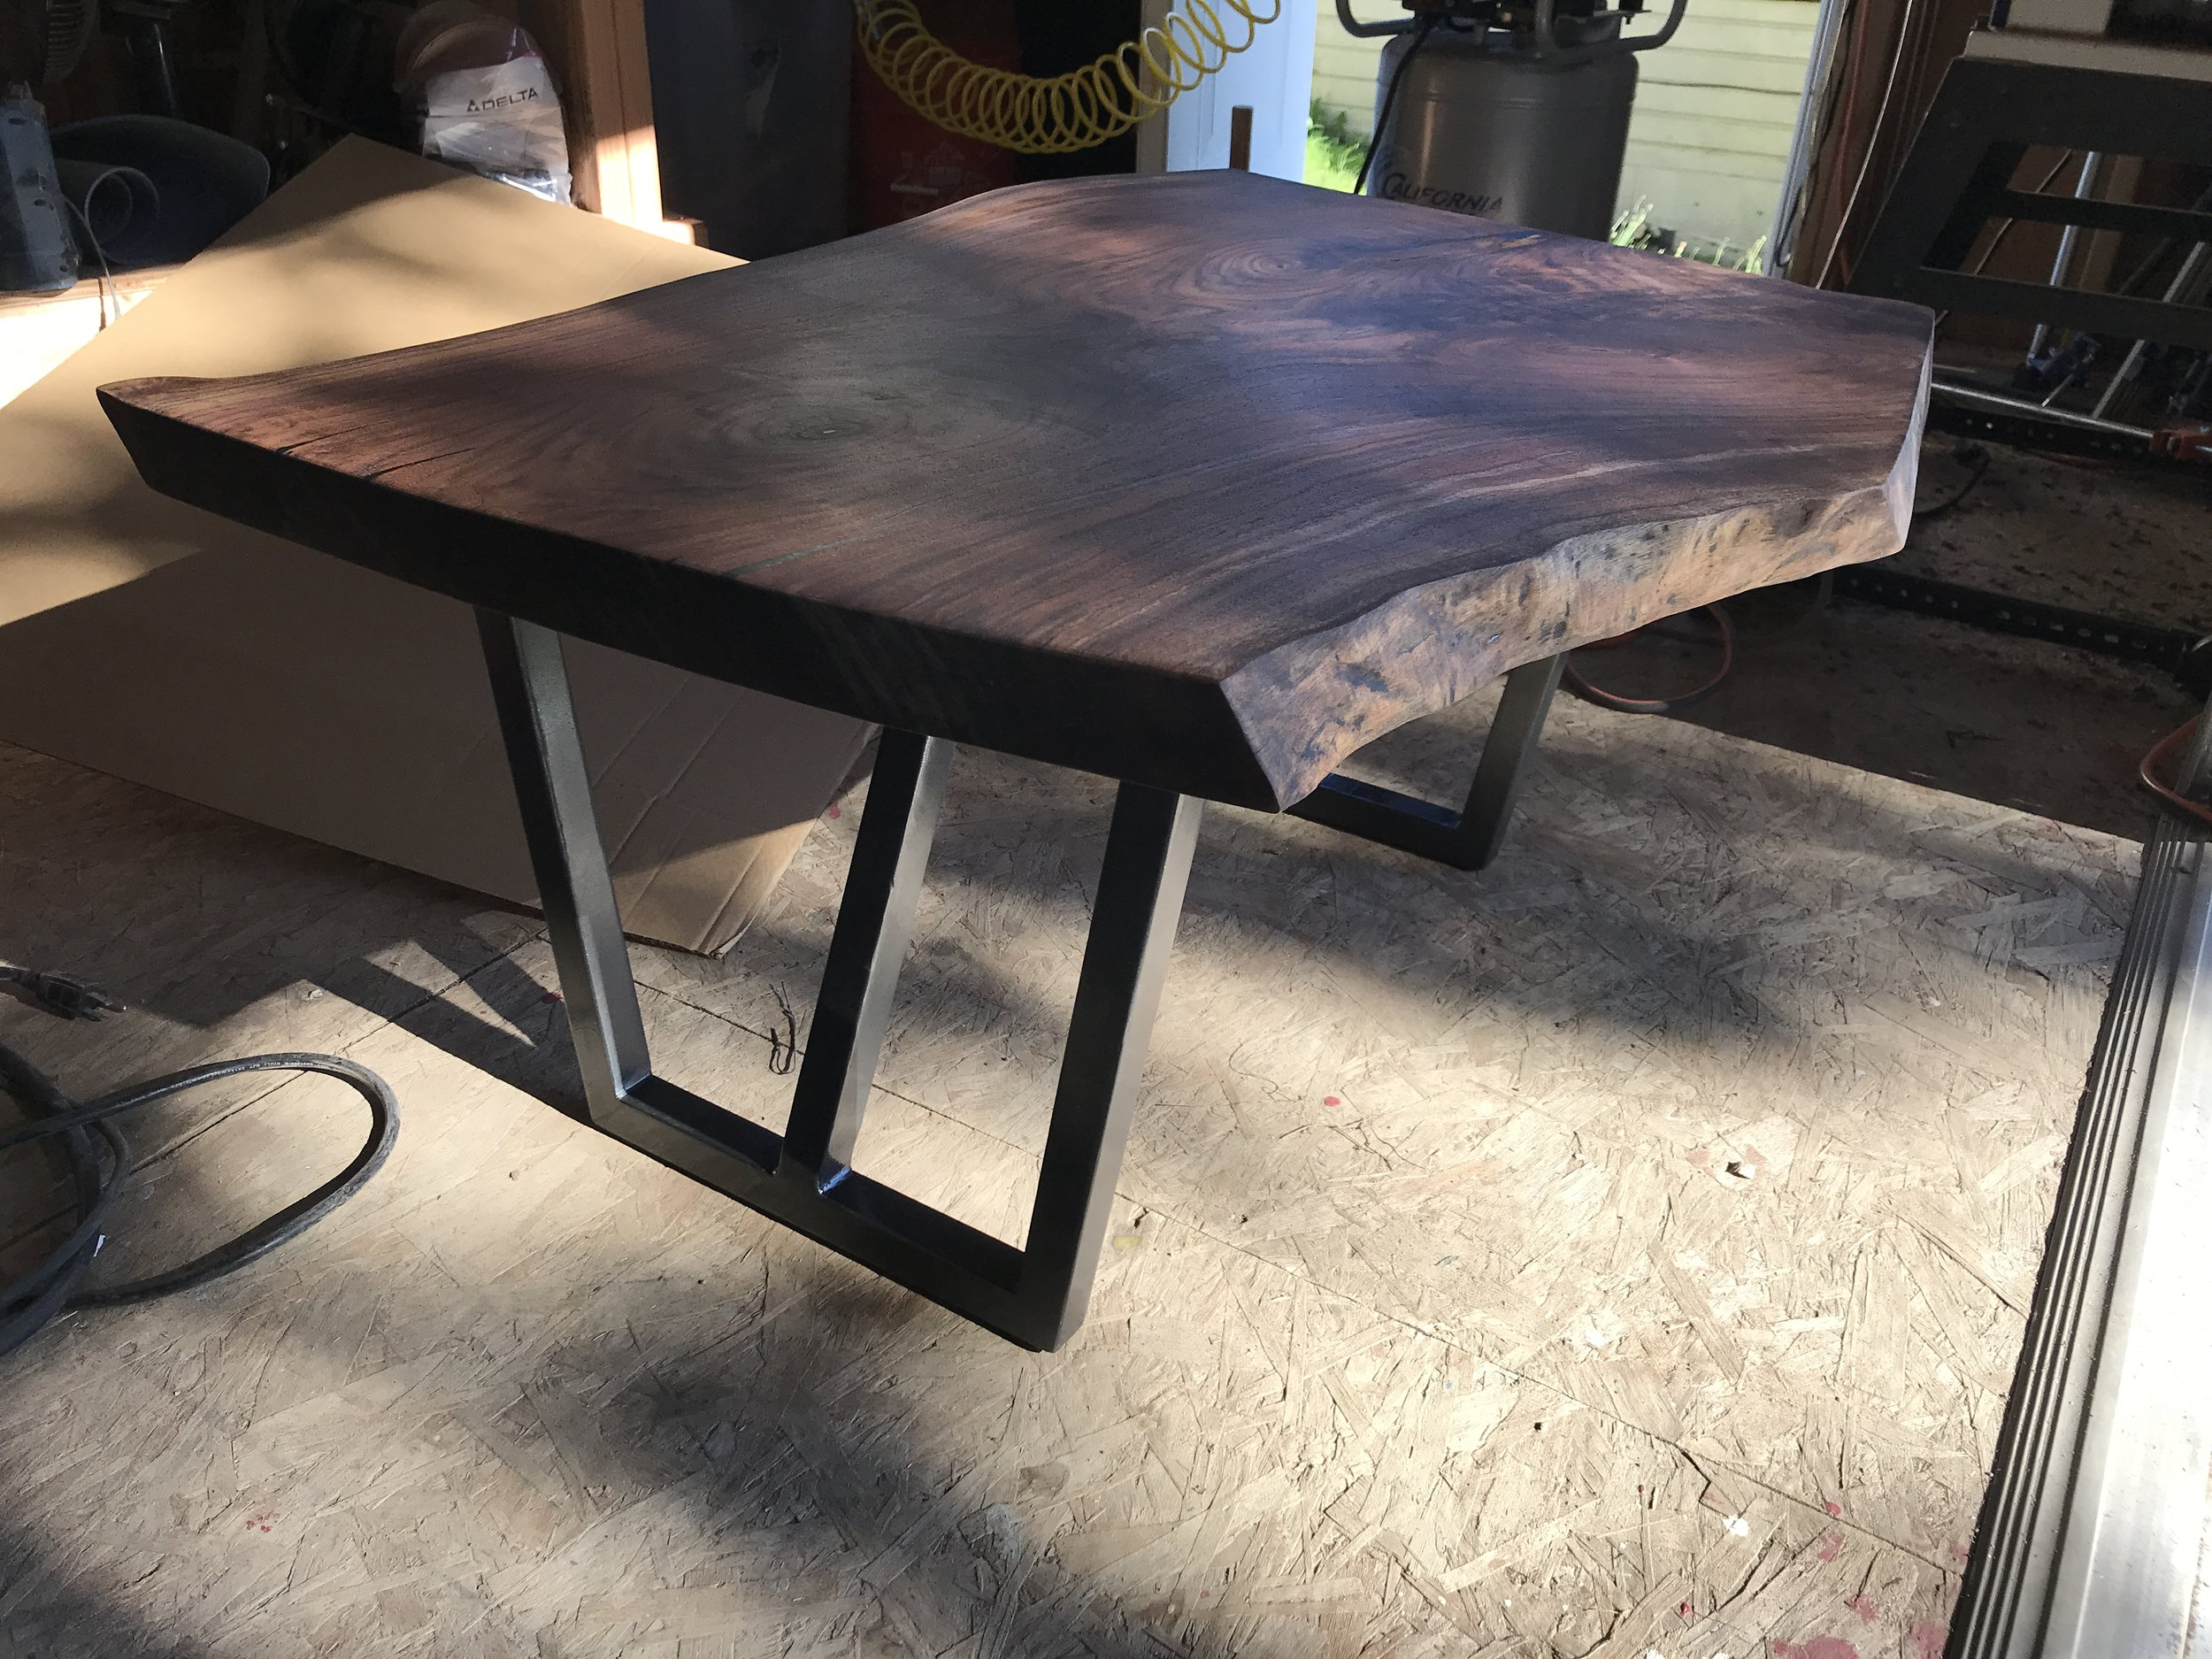 Live edge walnut slab coffee table I made as a wedding present for my friends Matt and Pria!